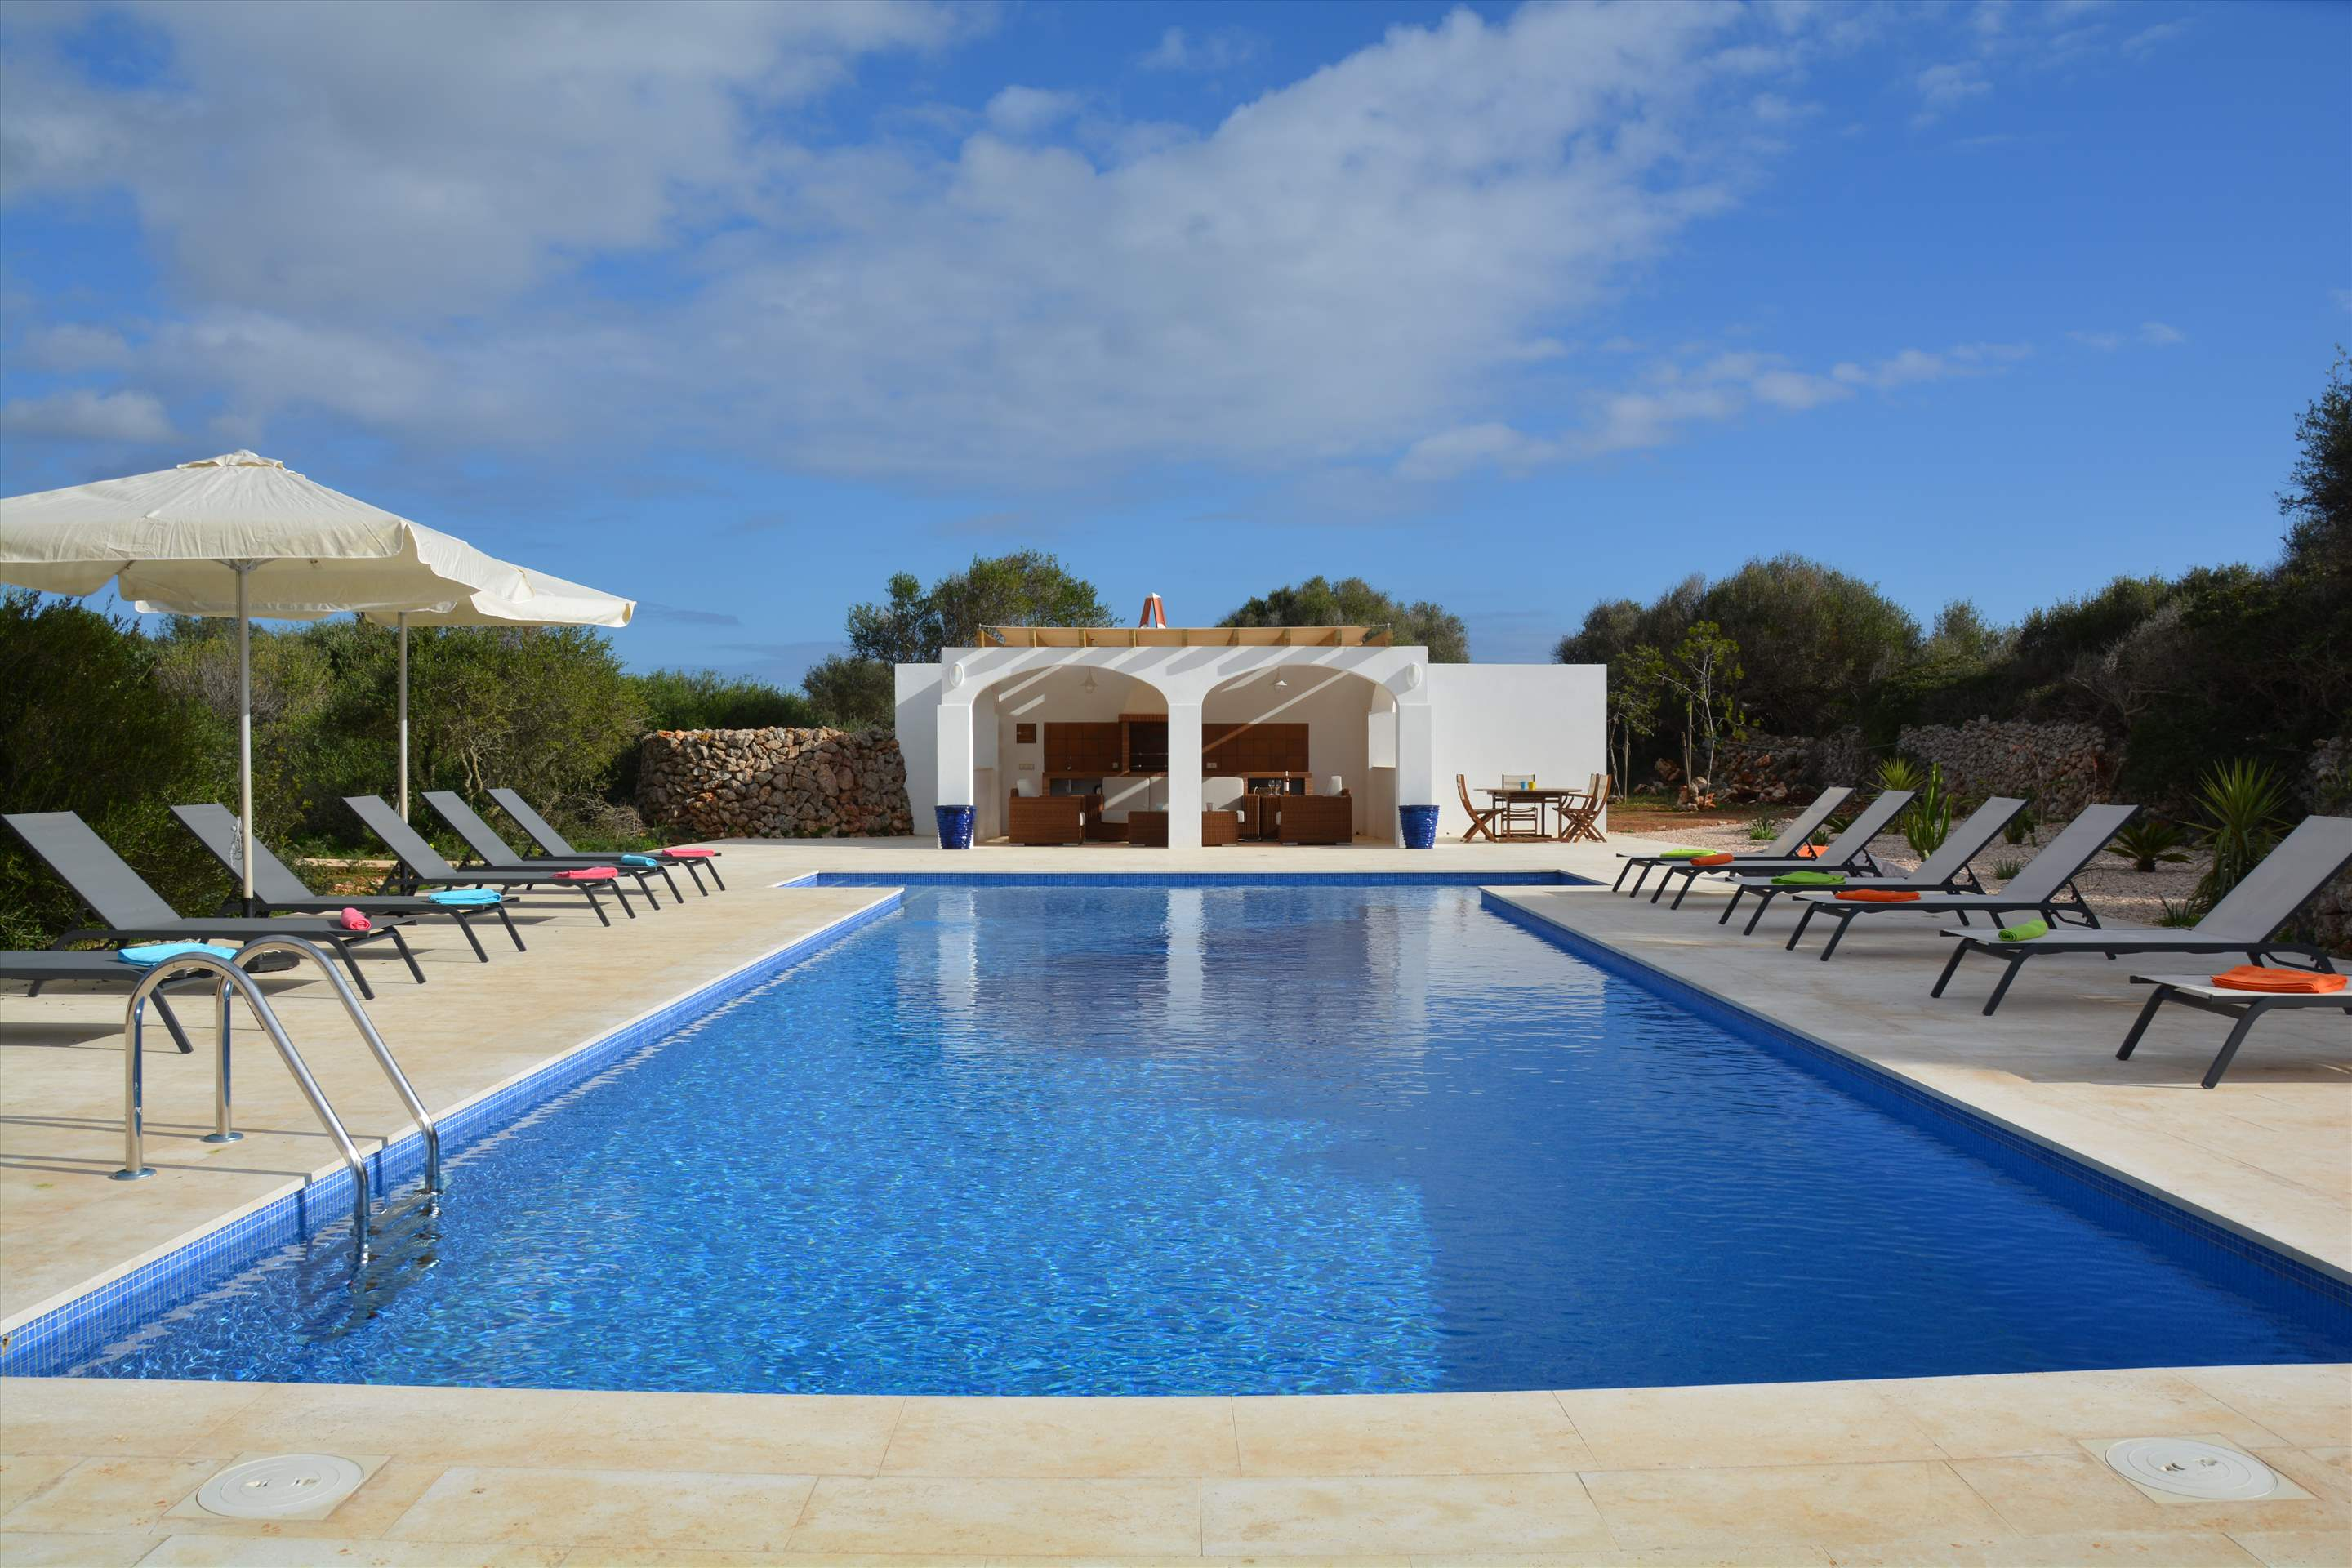 Les Arcs, 5 bedroom villa in Mahon, San Luis & South East, Menorca Photo #1